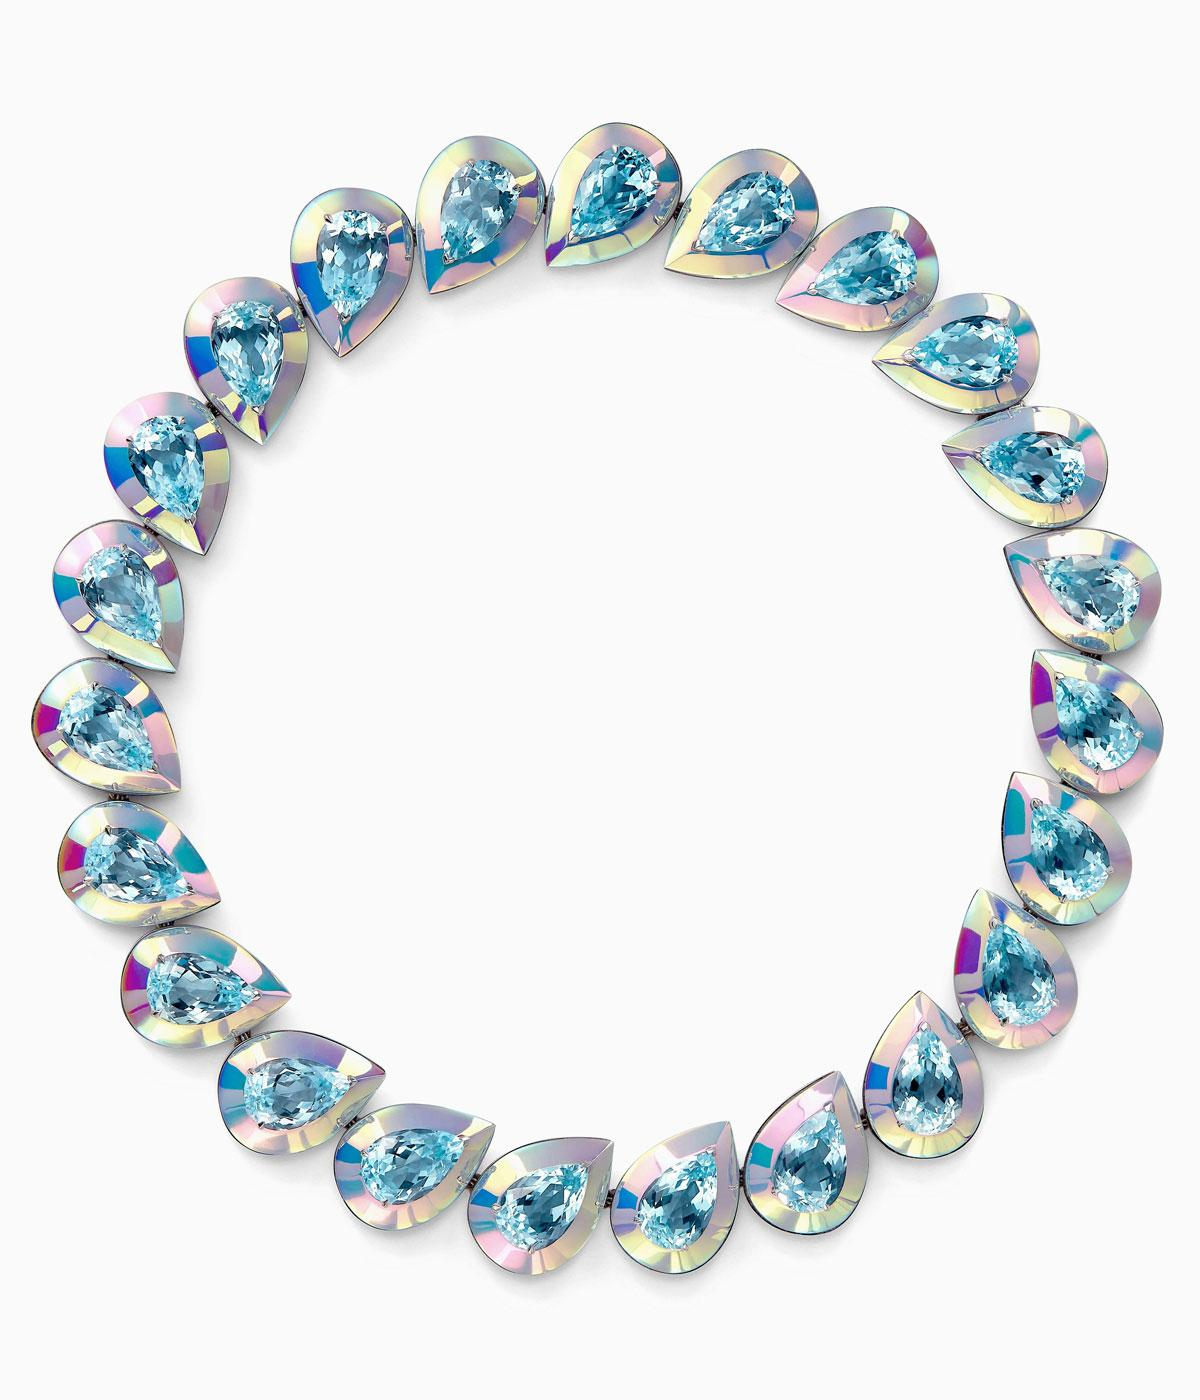 Necklace of sapphires edged in holographic material